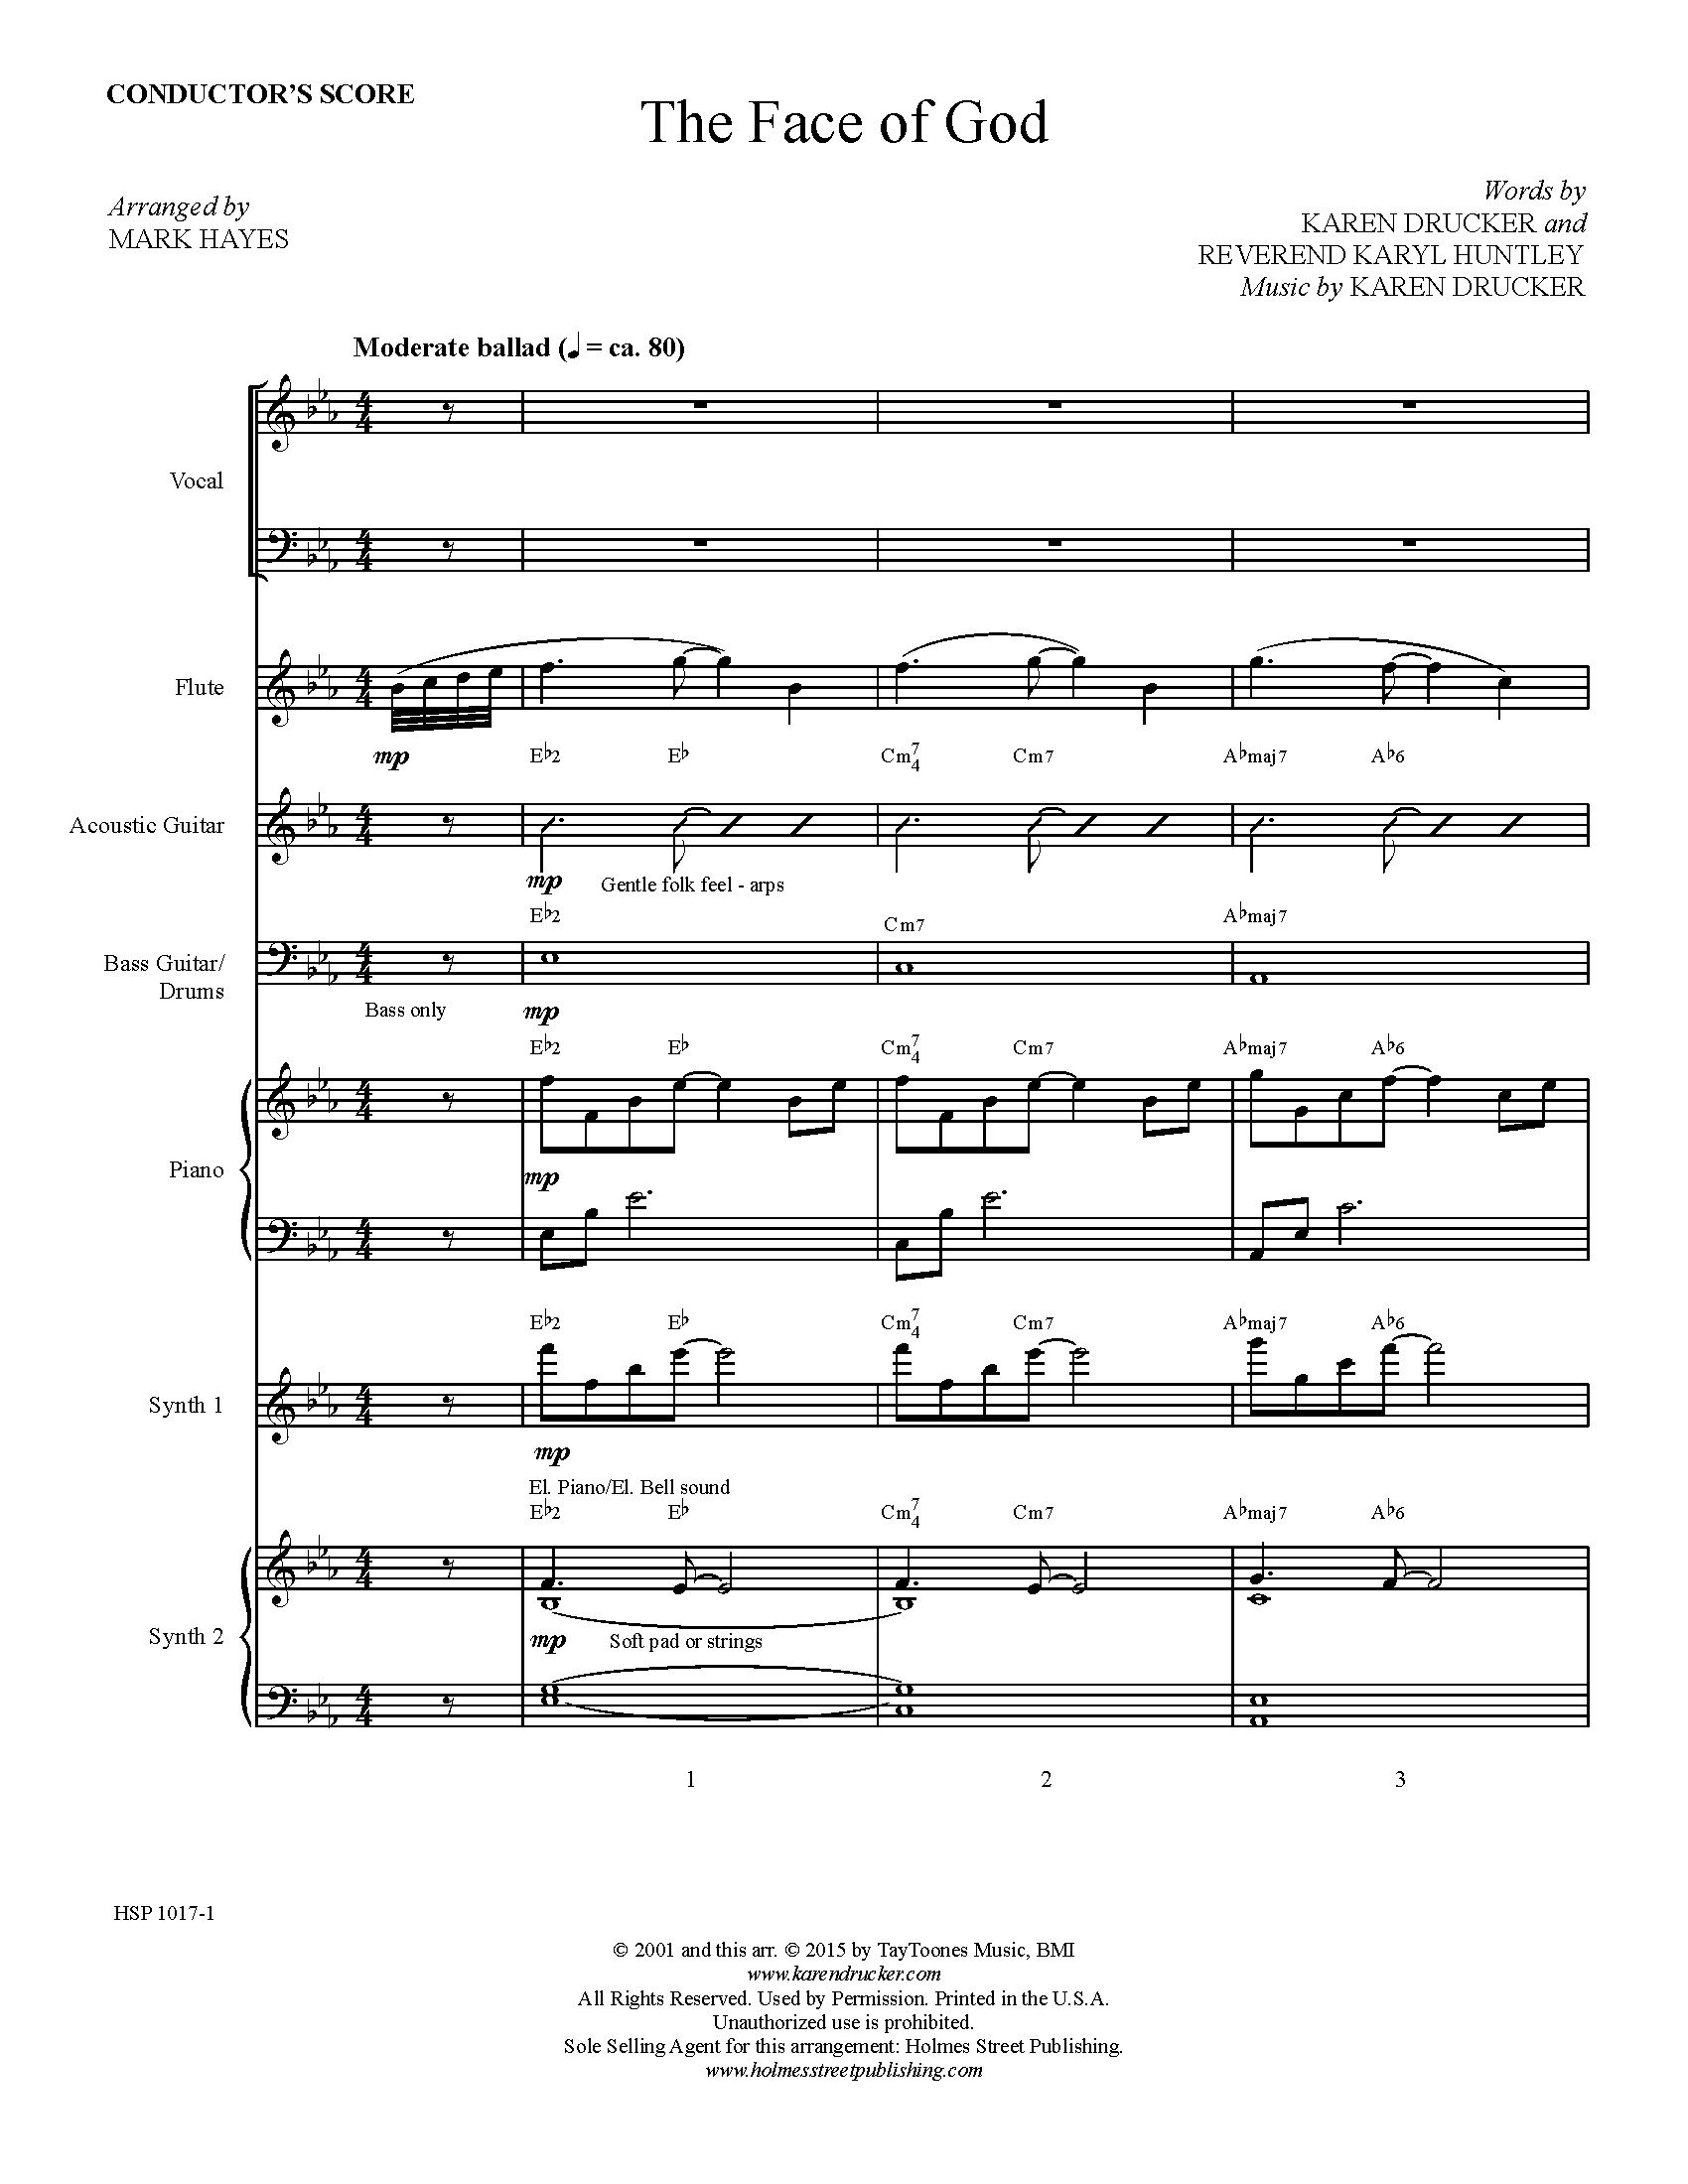 The Face of God - Instrumental Score and Parts